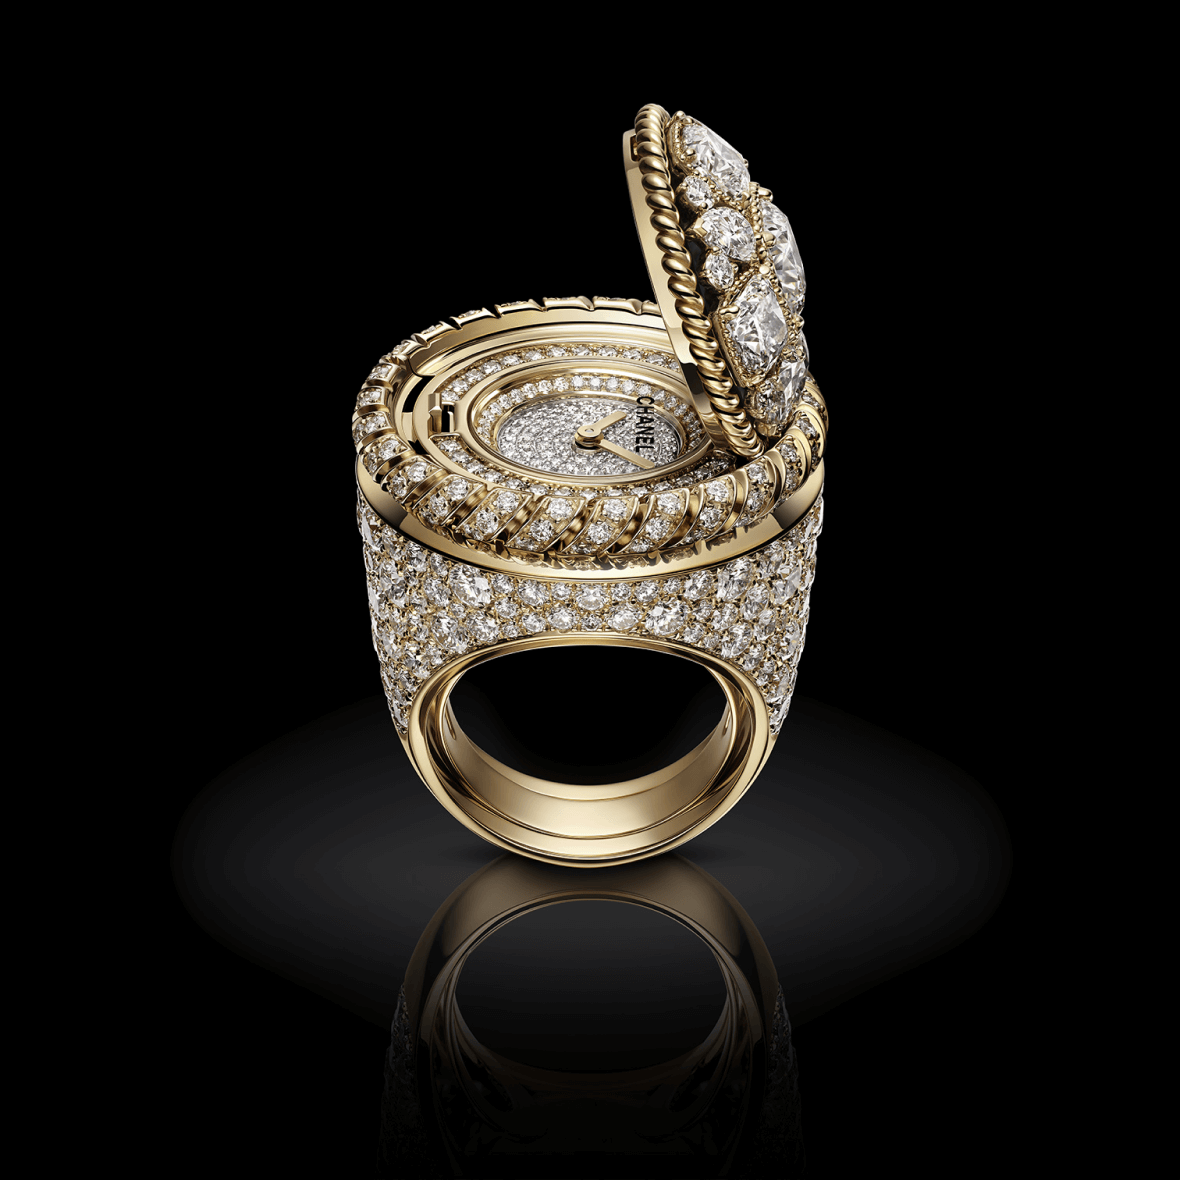 H7071 Mademoiselle Privé Bouton ring open view